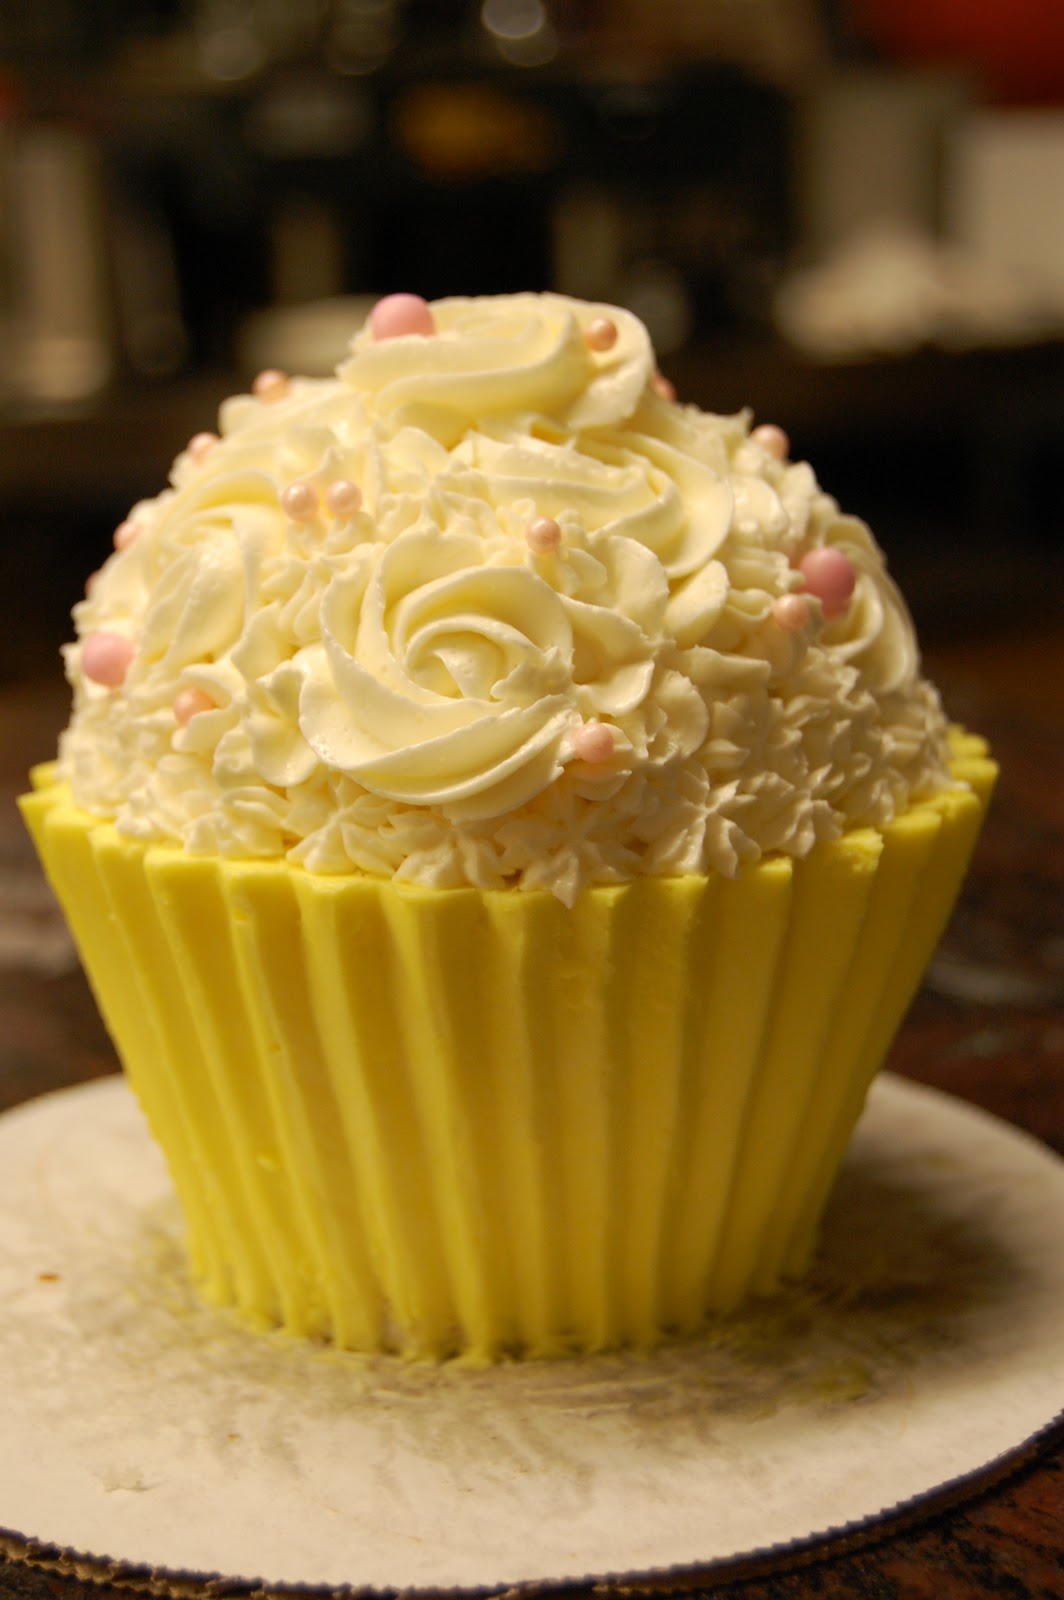 I LOVE Making These Its A Cake Shaped Like Cupcake This One Was Super Small Only About 4 At Widest Point